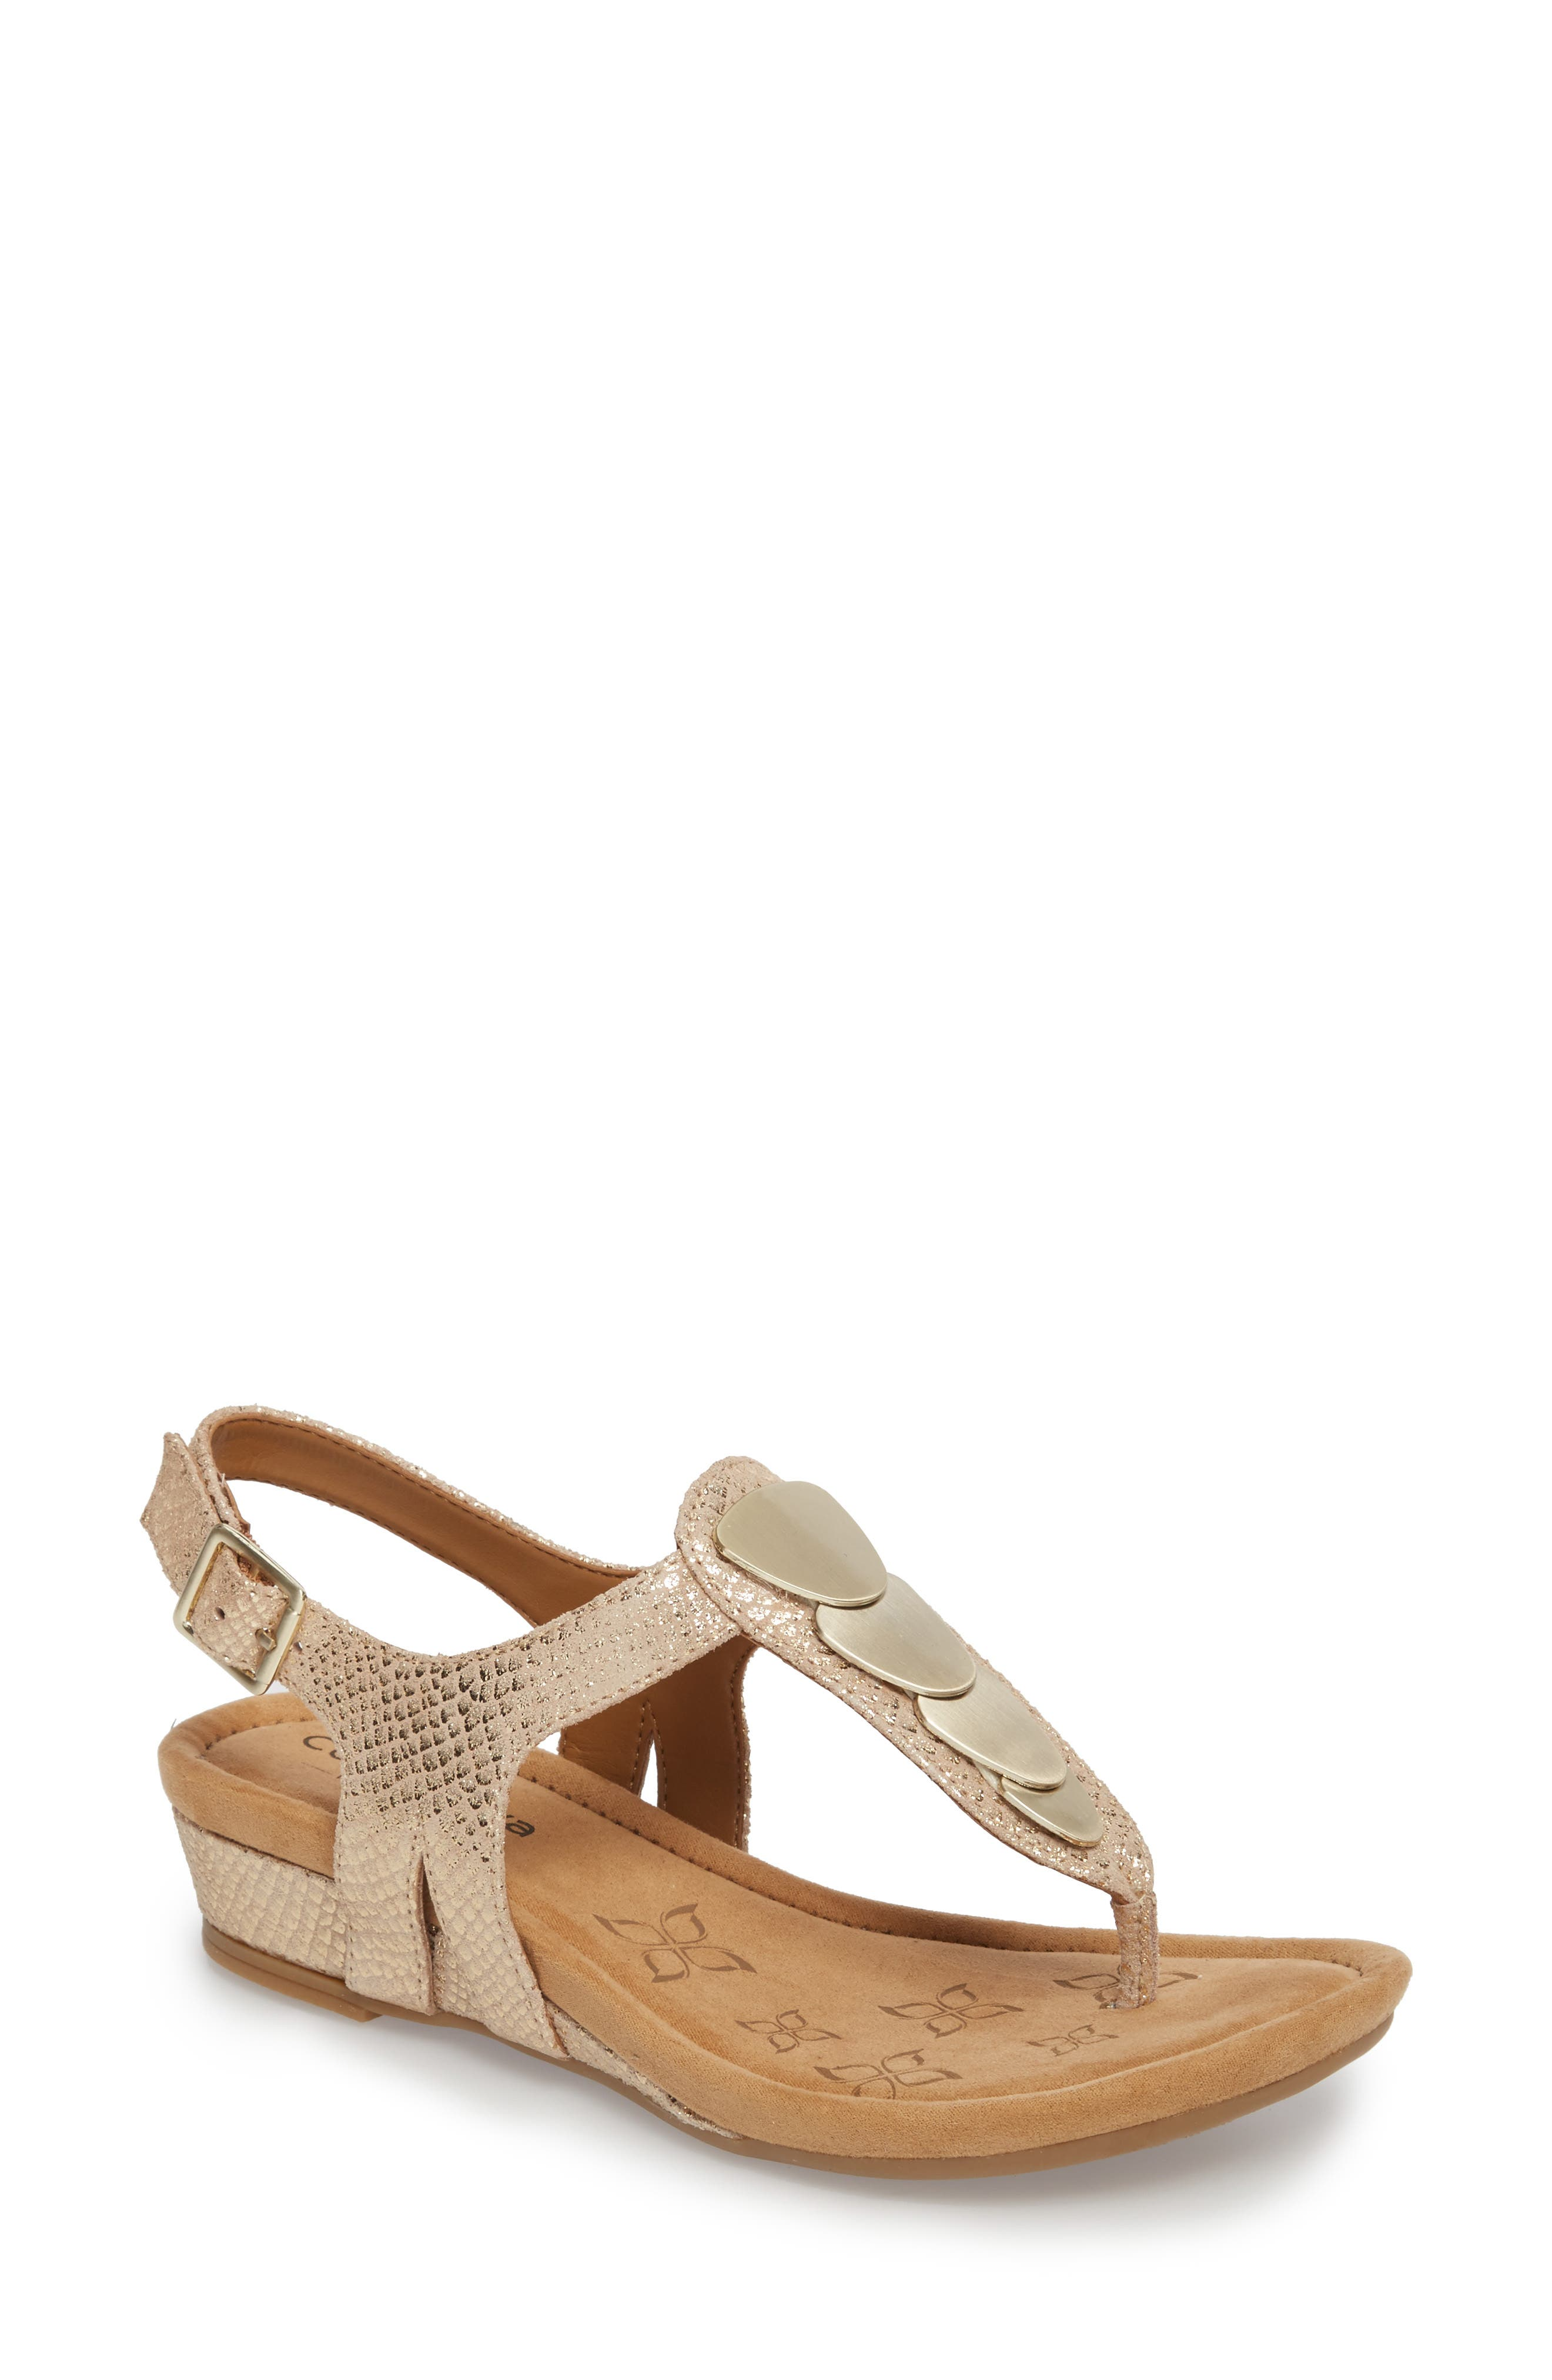 Summit Wedge Sandal,                         Main,                         color, Gold Suede